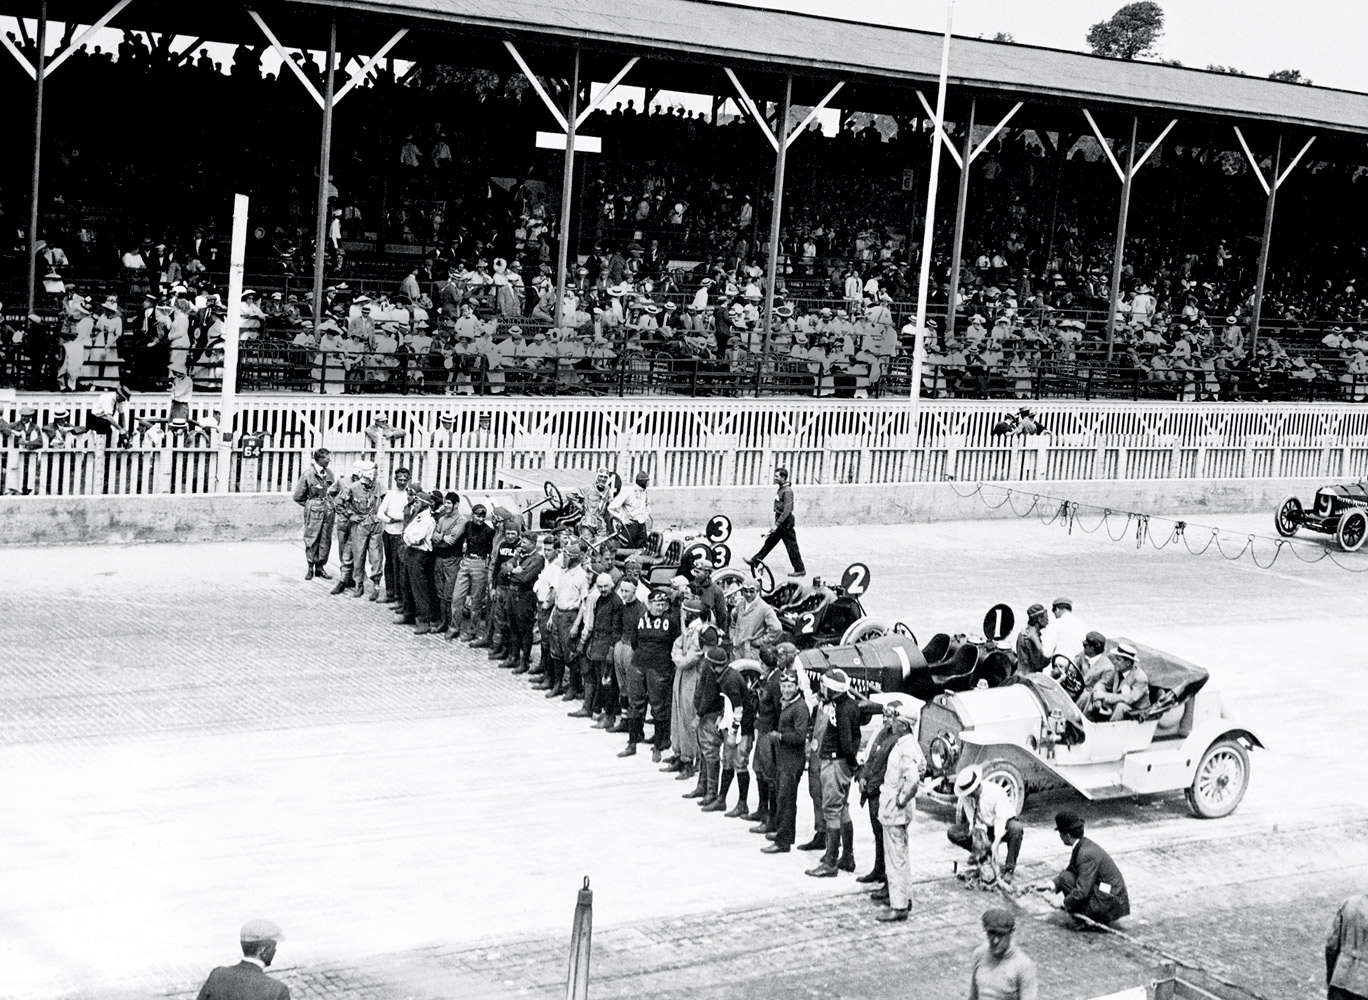 The lineup for Indy's first 500-mile race was led by a convertible pace car (lower right). The photographer? Yes—it's Mr. Henry Ford.